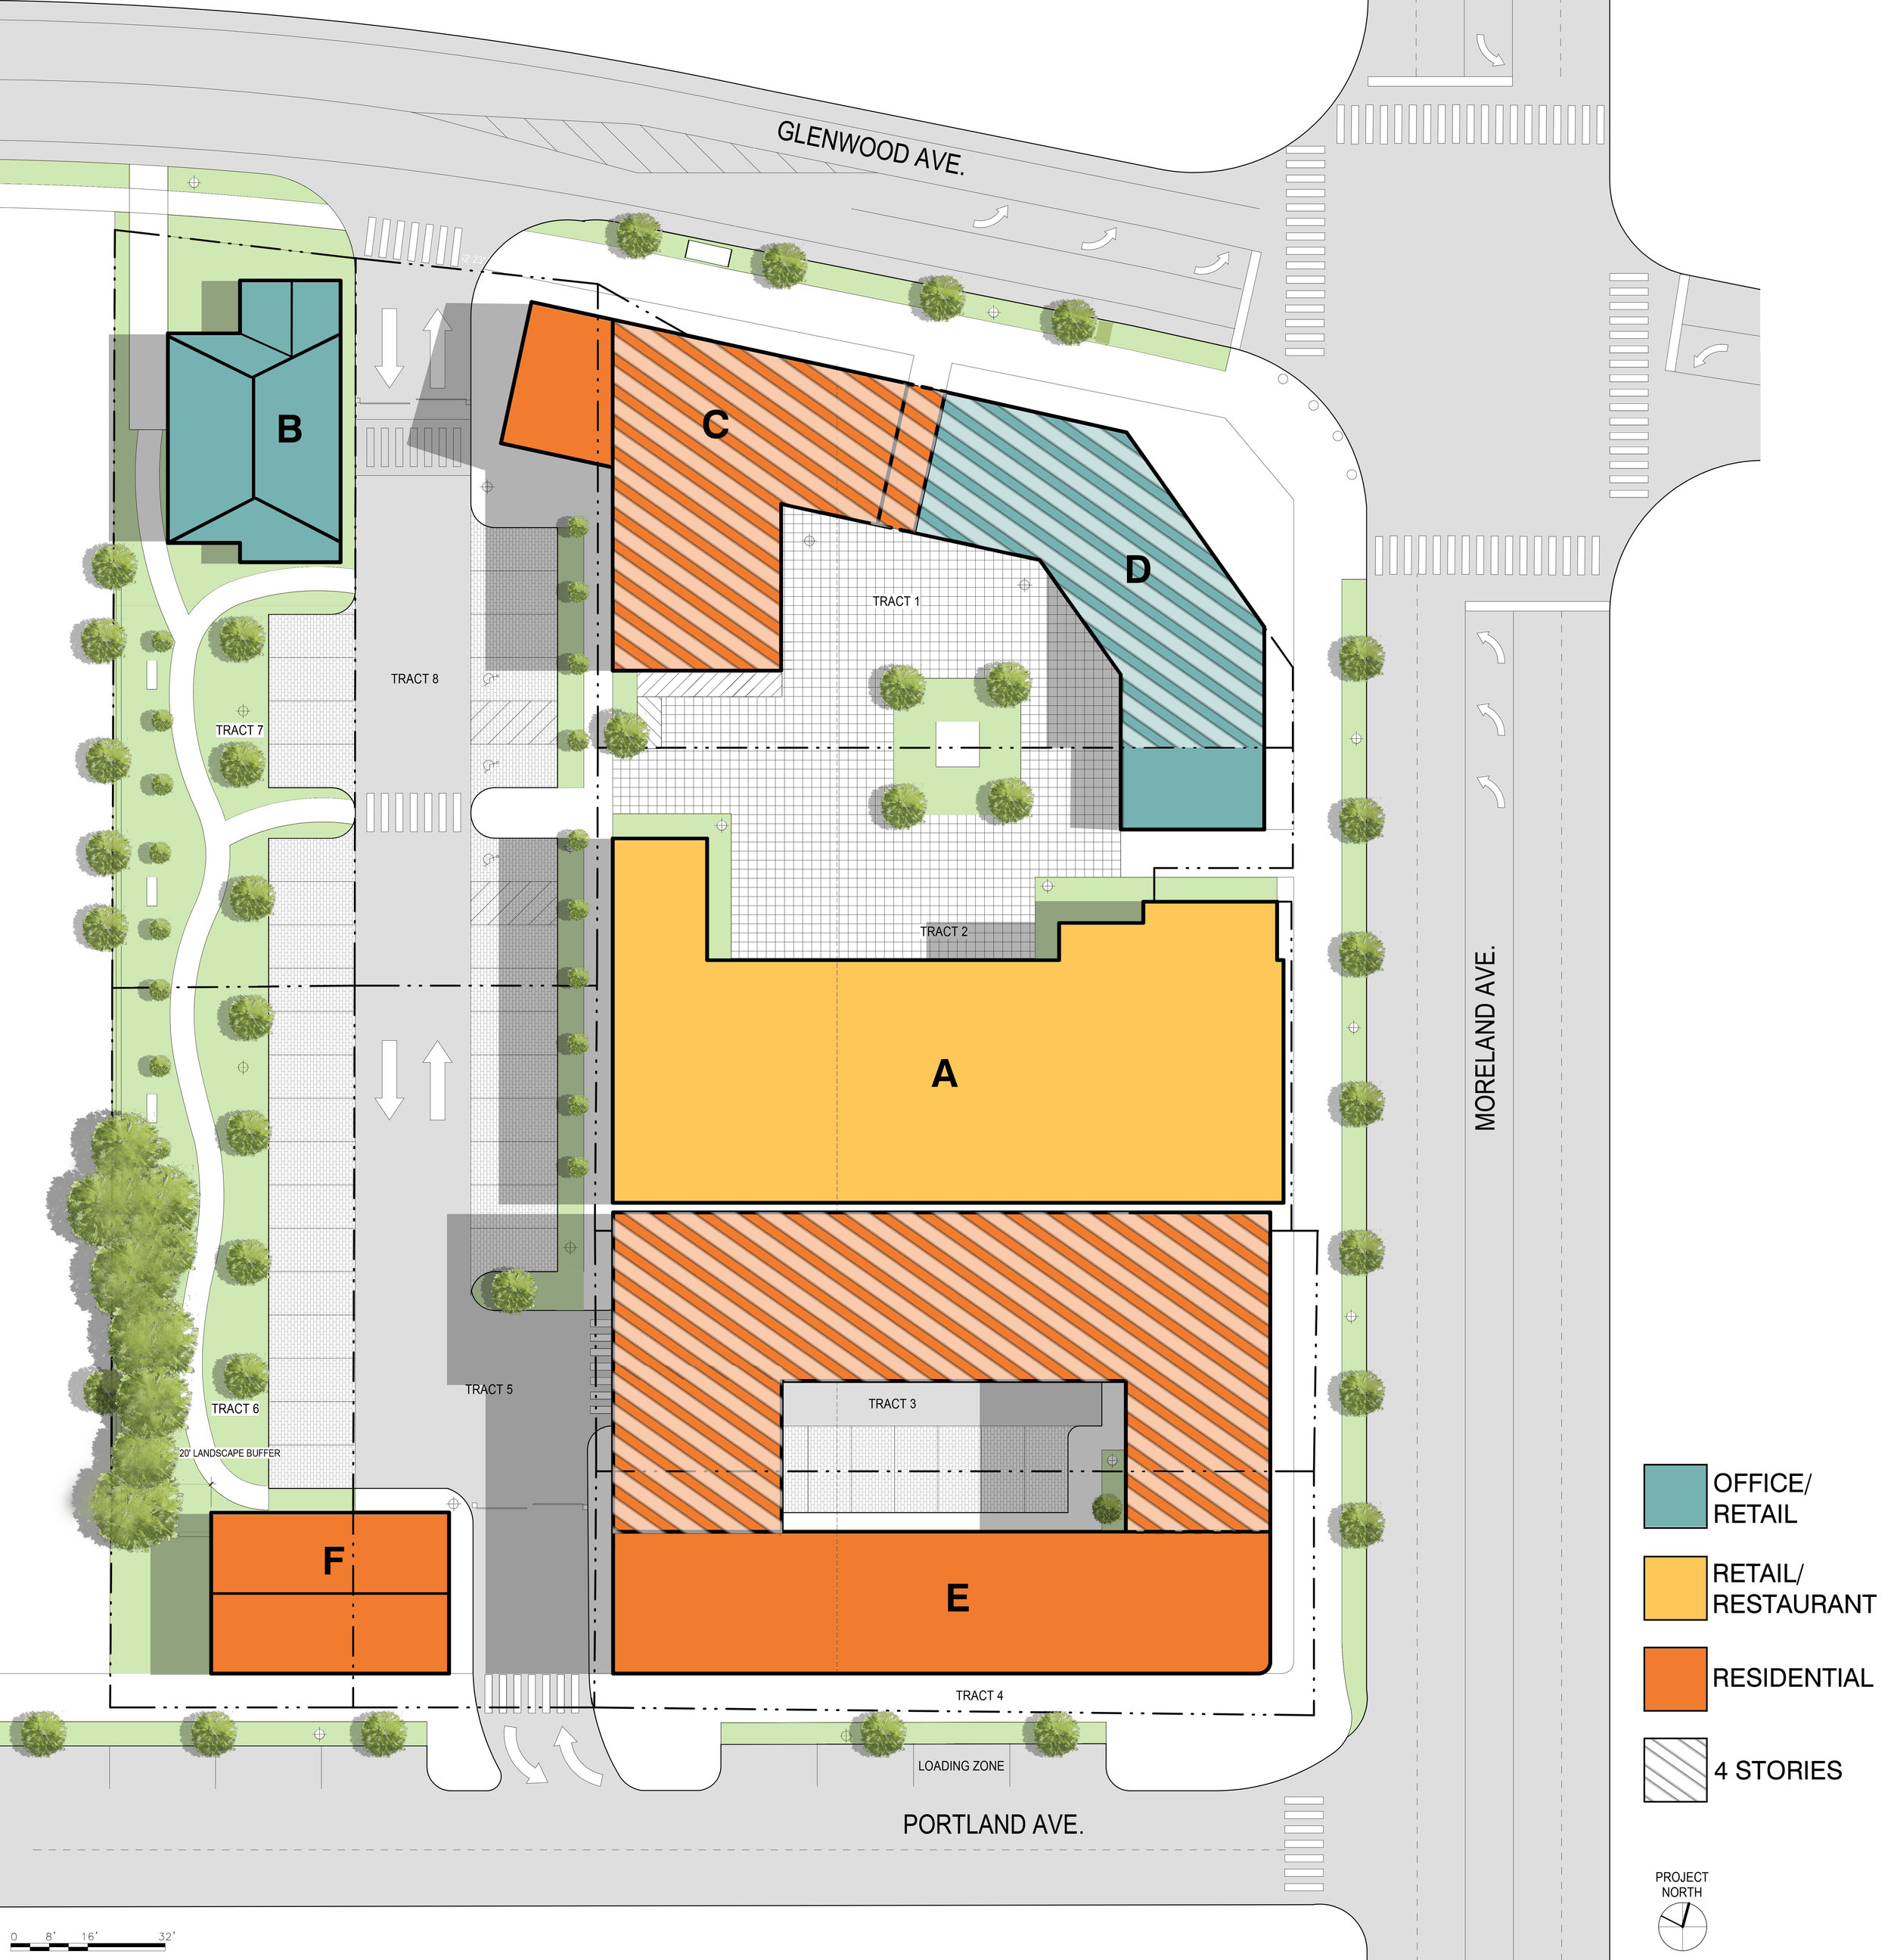 Illustrative color-coded site plan.